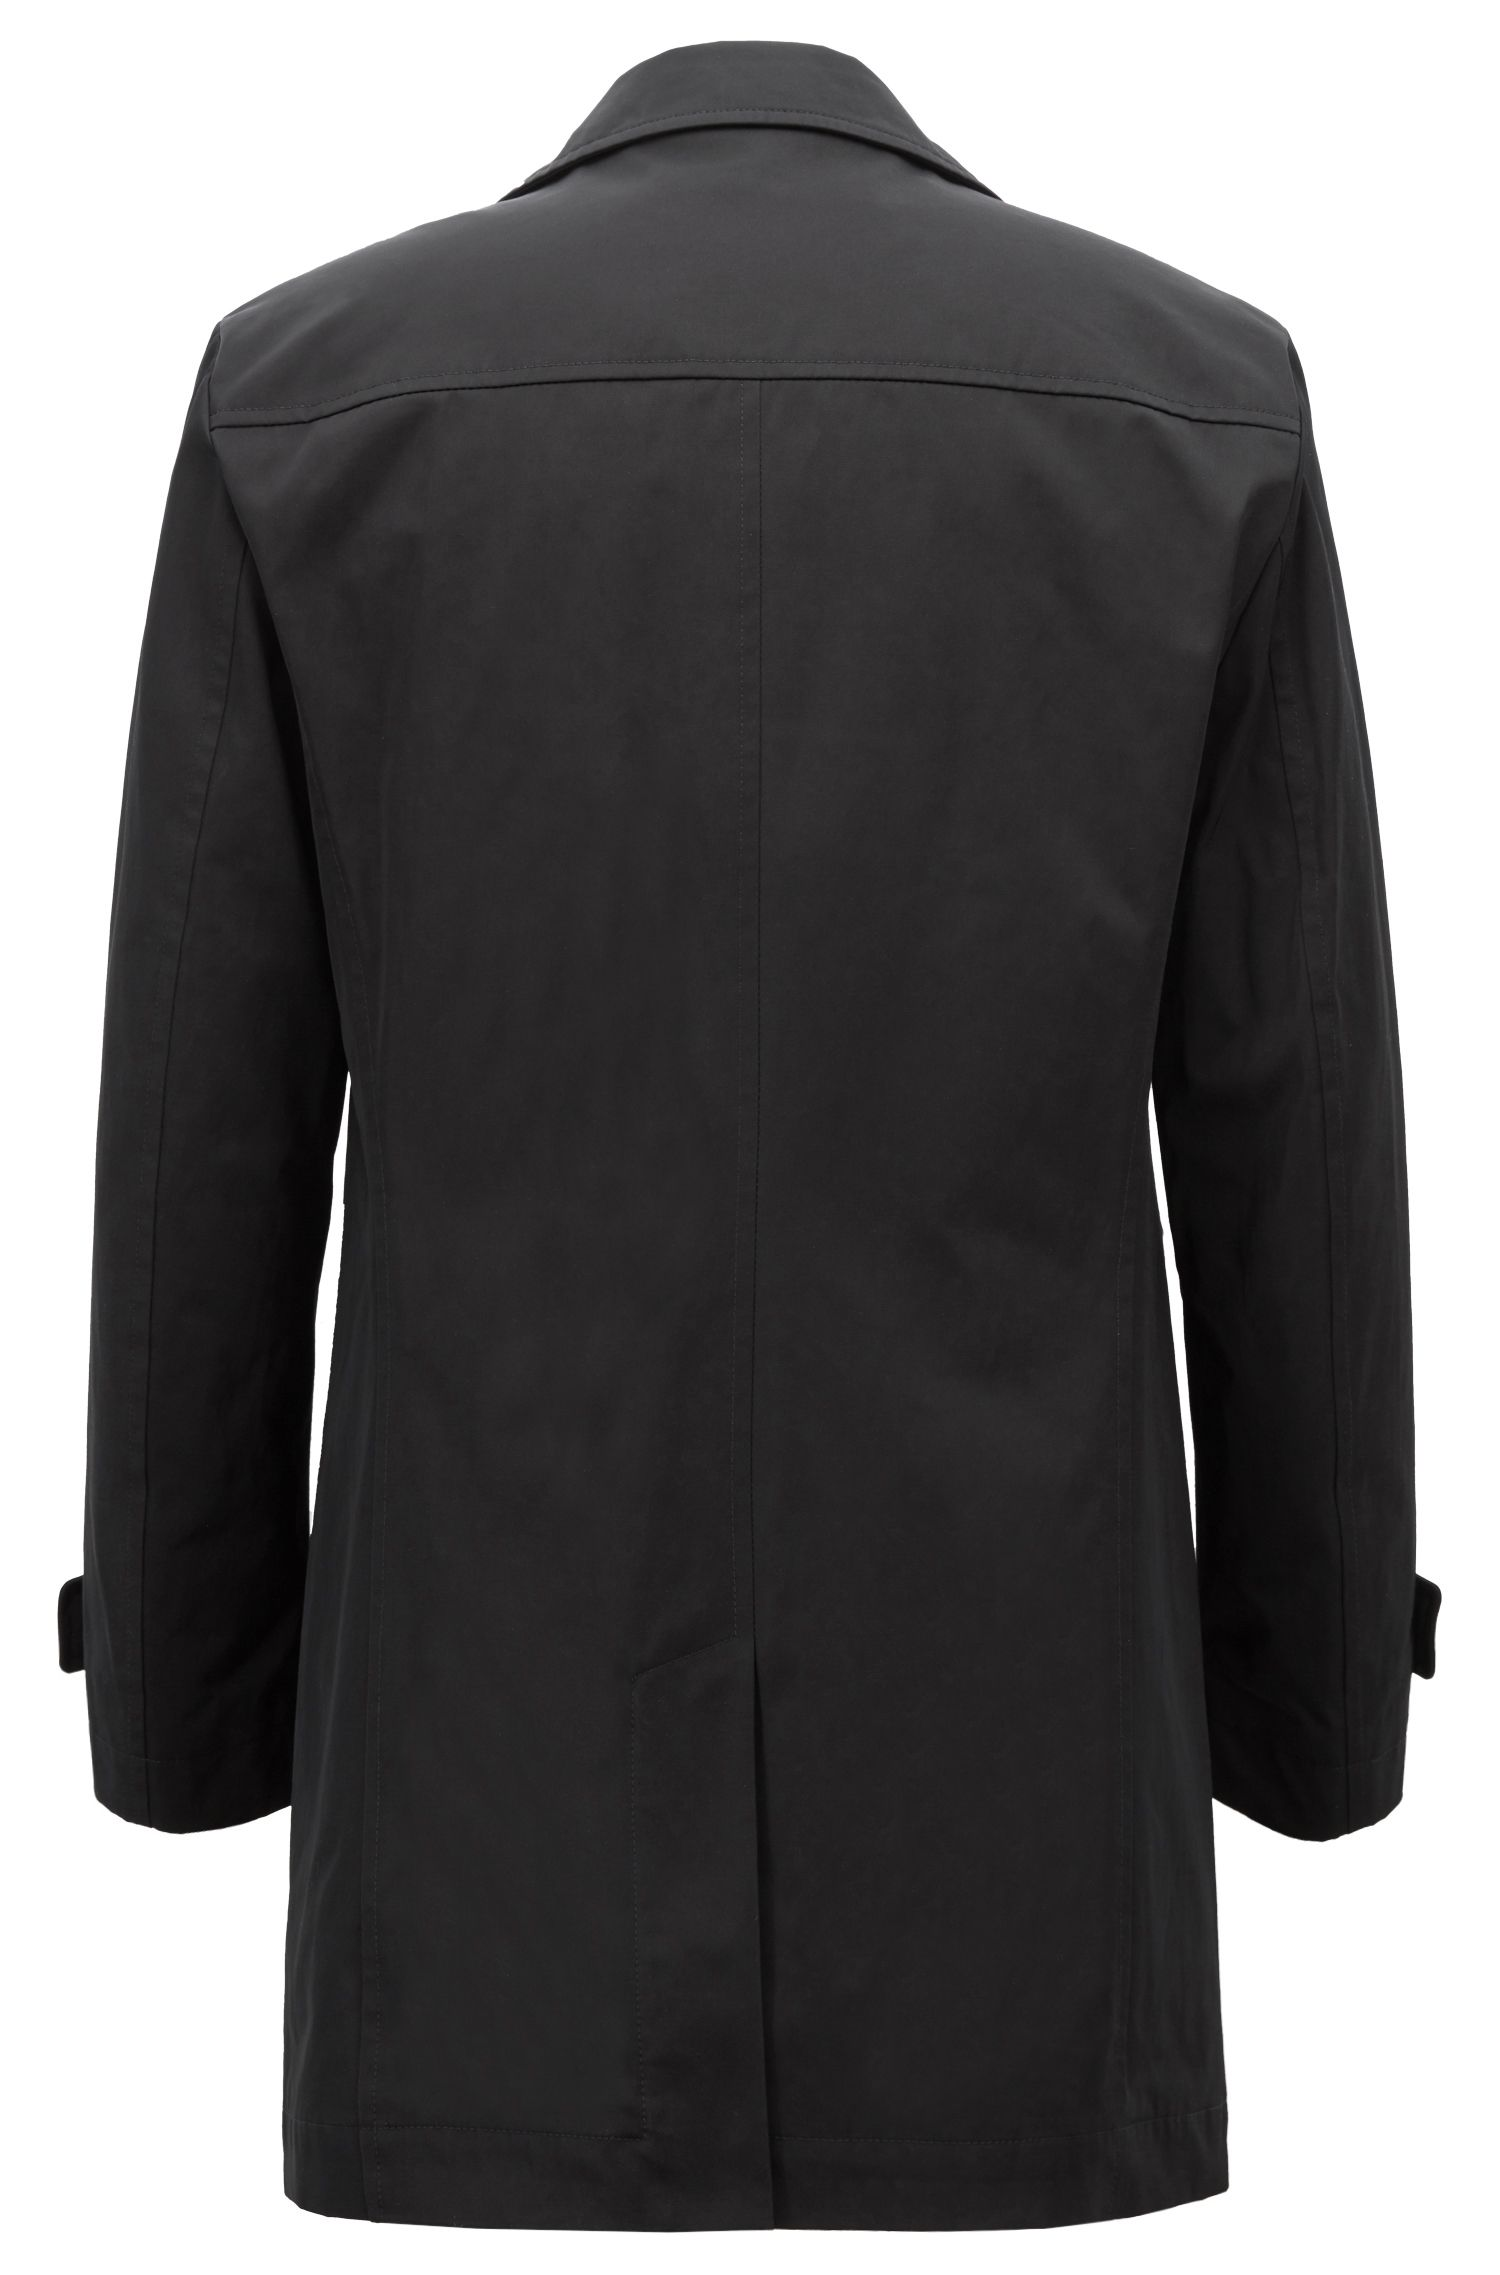 Cappotto corto idrorepellente in twill tecnico, Nero